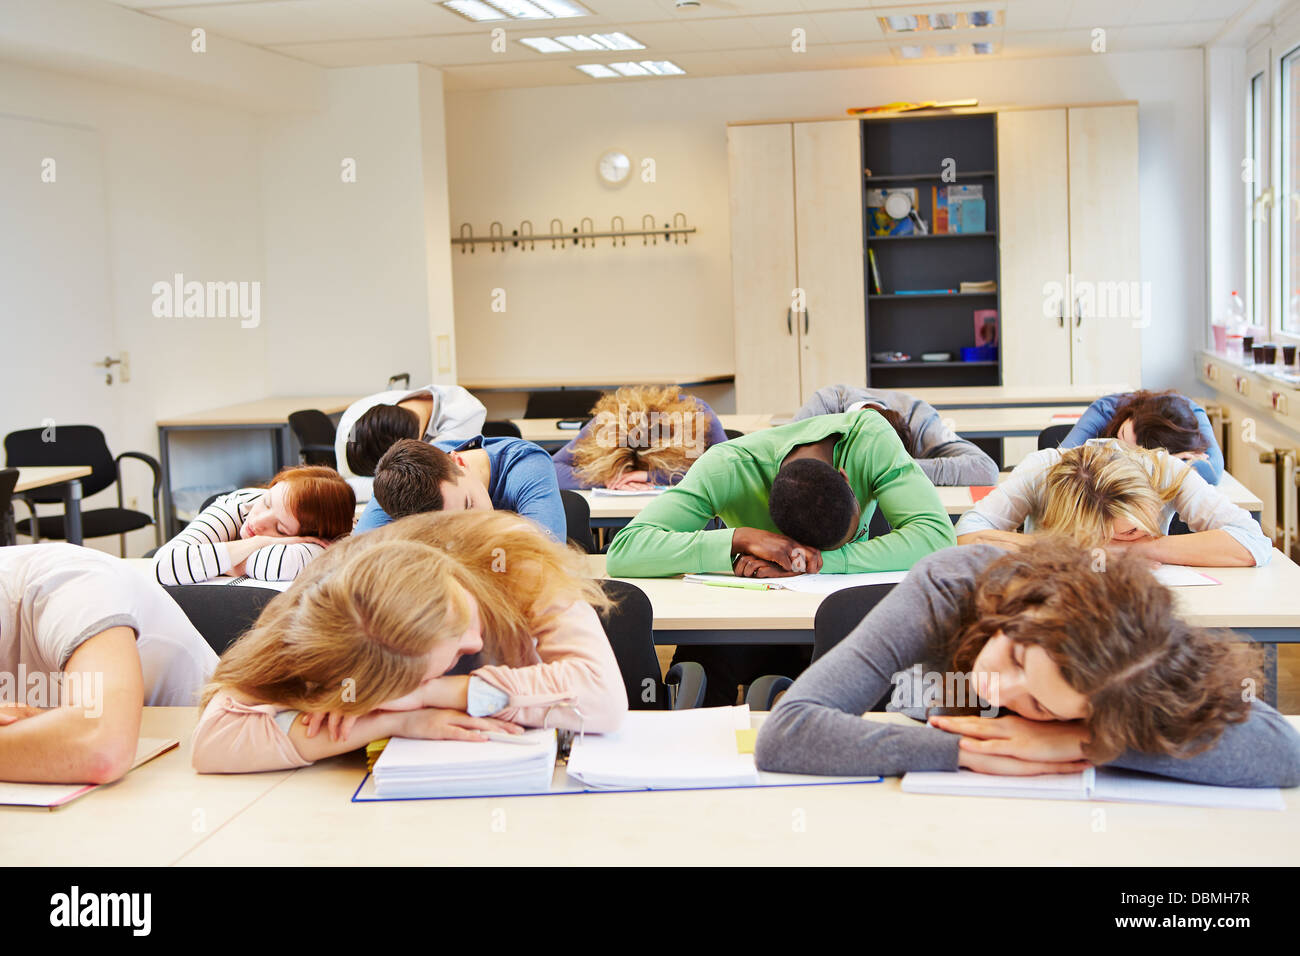 Sleeping student in class